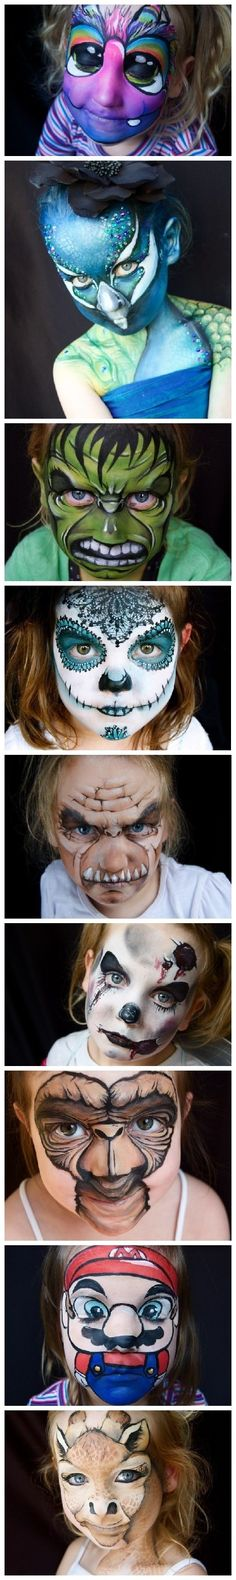 face Painted #Halloween #Halloween #halloween| http://welcometohalloween.lemoncoin.org